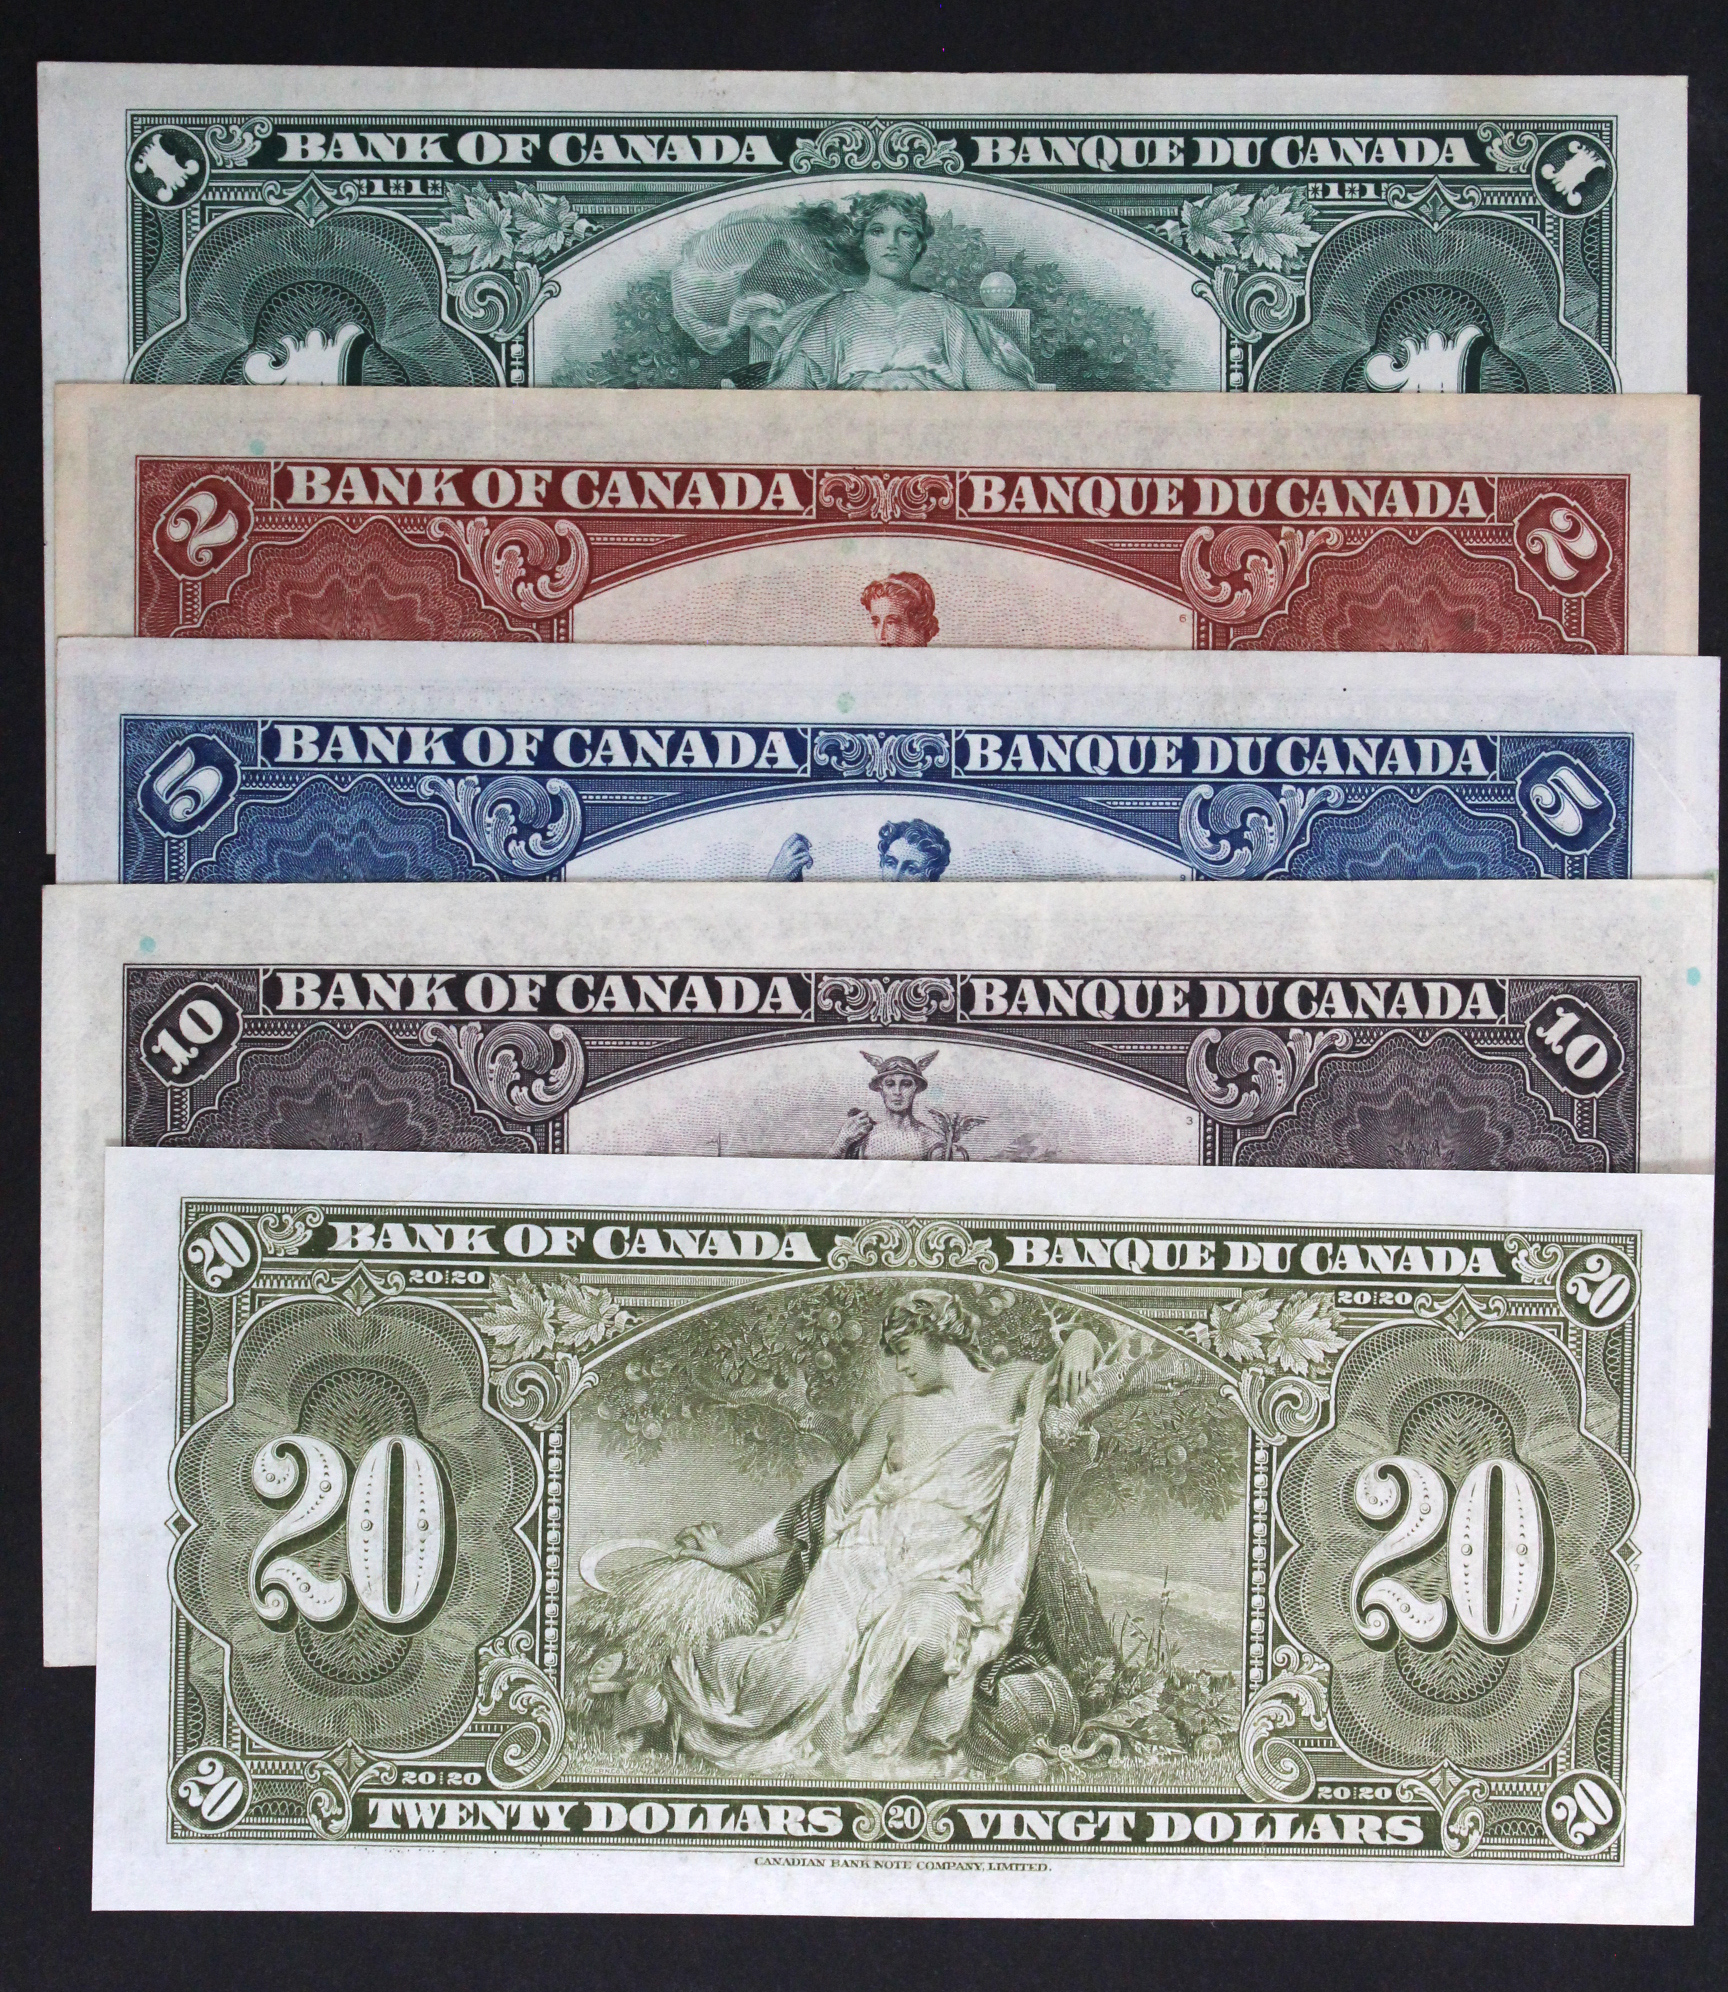 Canada (5), a group of King George VI notes, 20 Dollars, 10 Dollars, 5 Dollars, 2 Dollars and 1 - Image 2 of 2